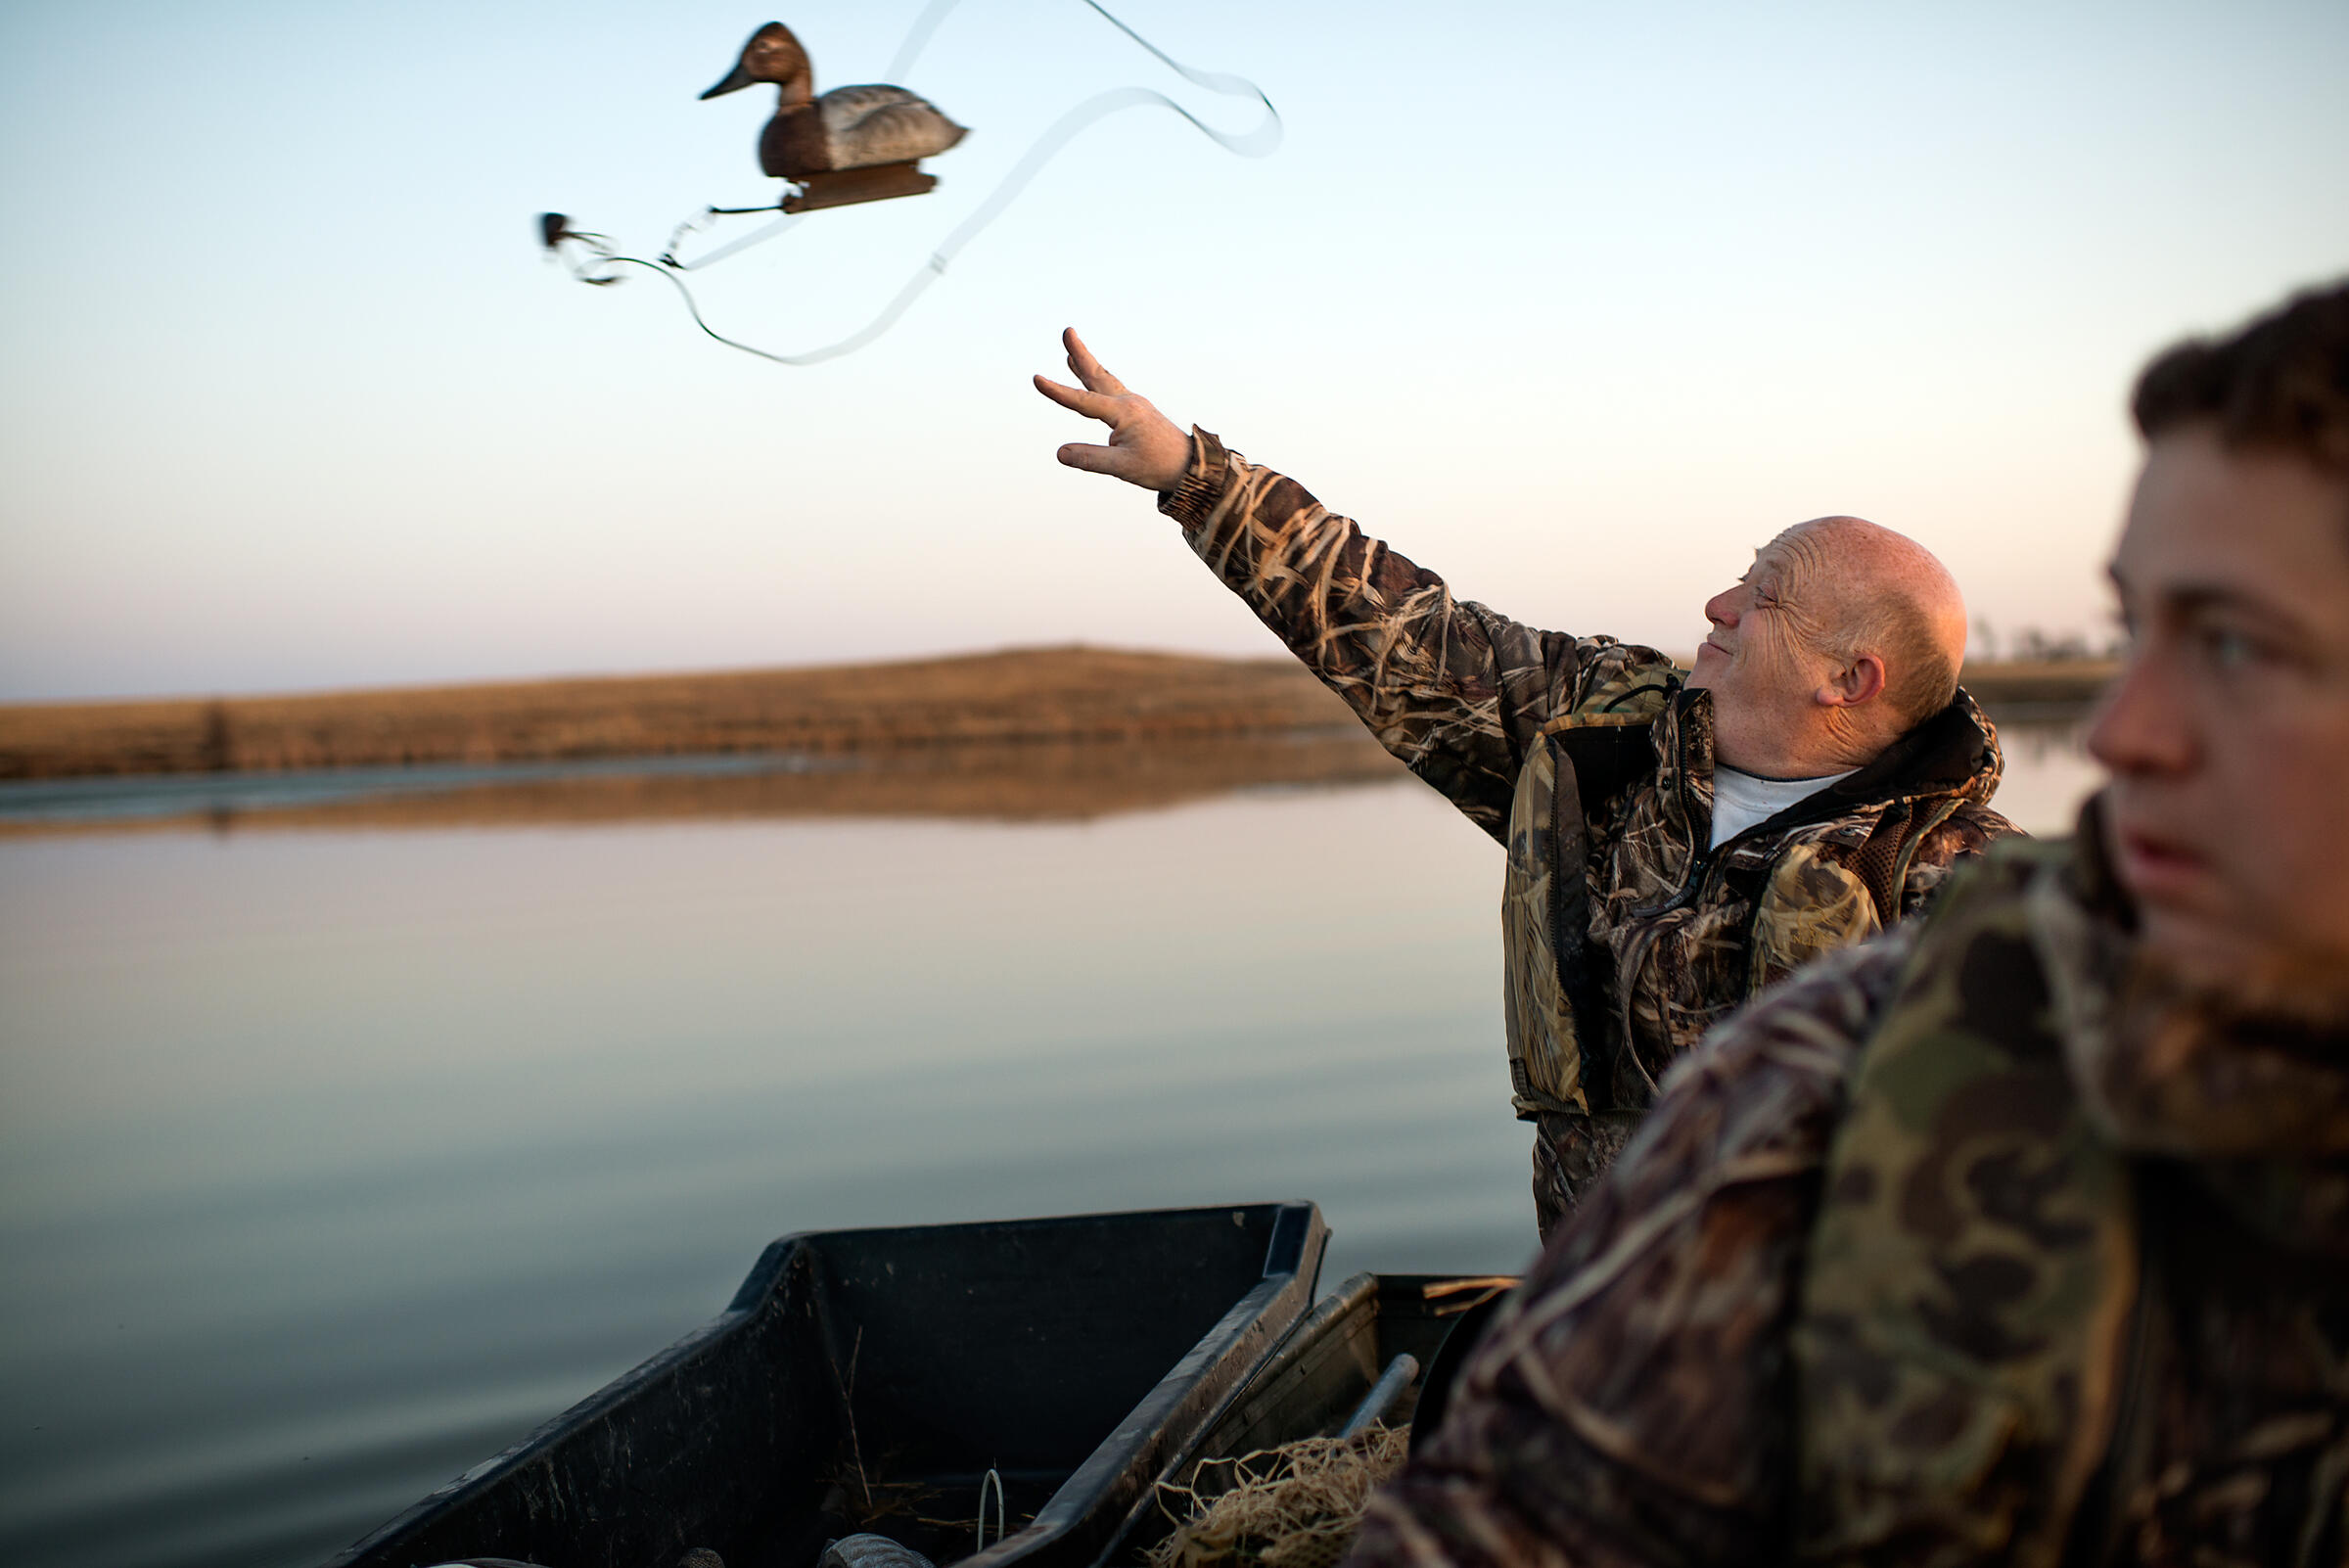 Tim Taylor, bird artist and Adam Grimm's best friend, flings a decoy into a pond at South Dakota's Job Waterfowl Production Area, while Grimm rows the boat. Jon Lowenstein